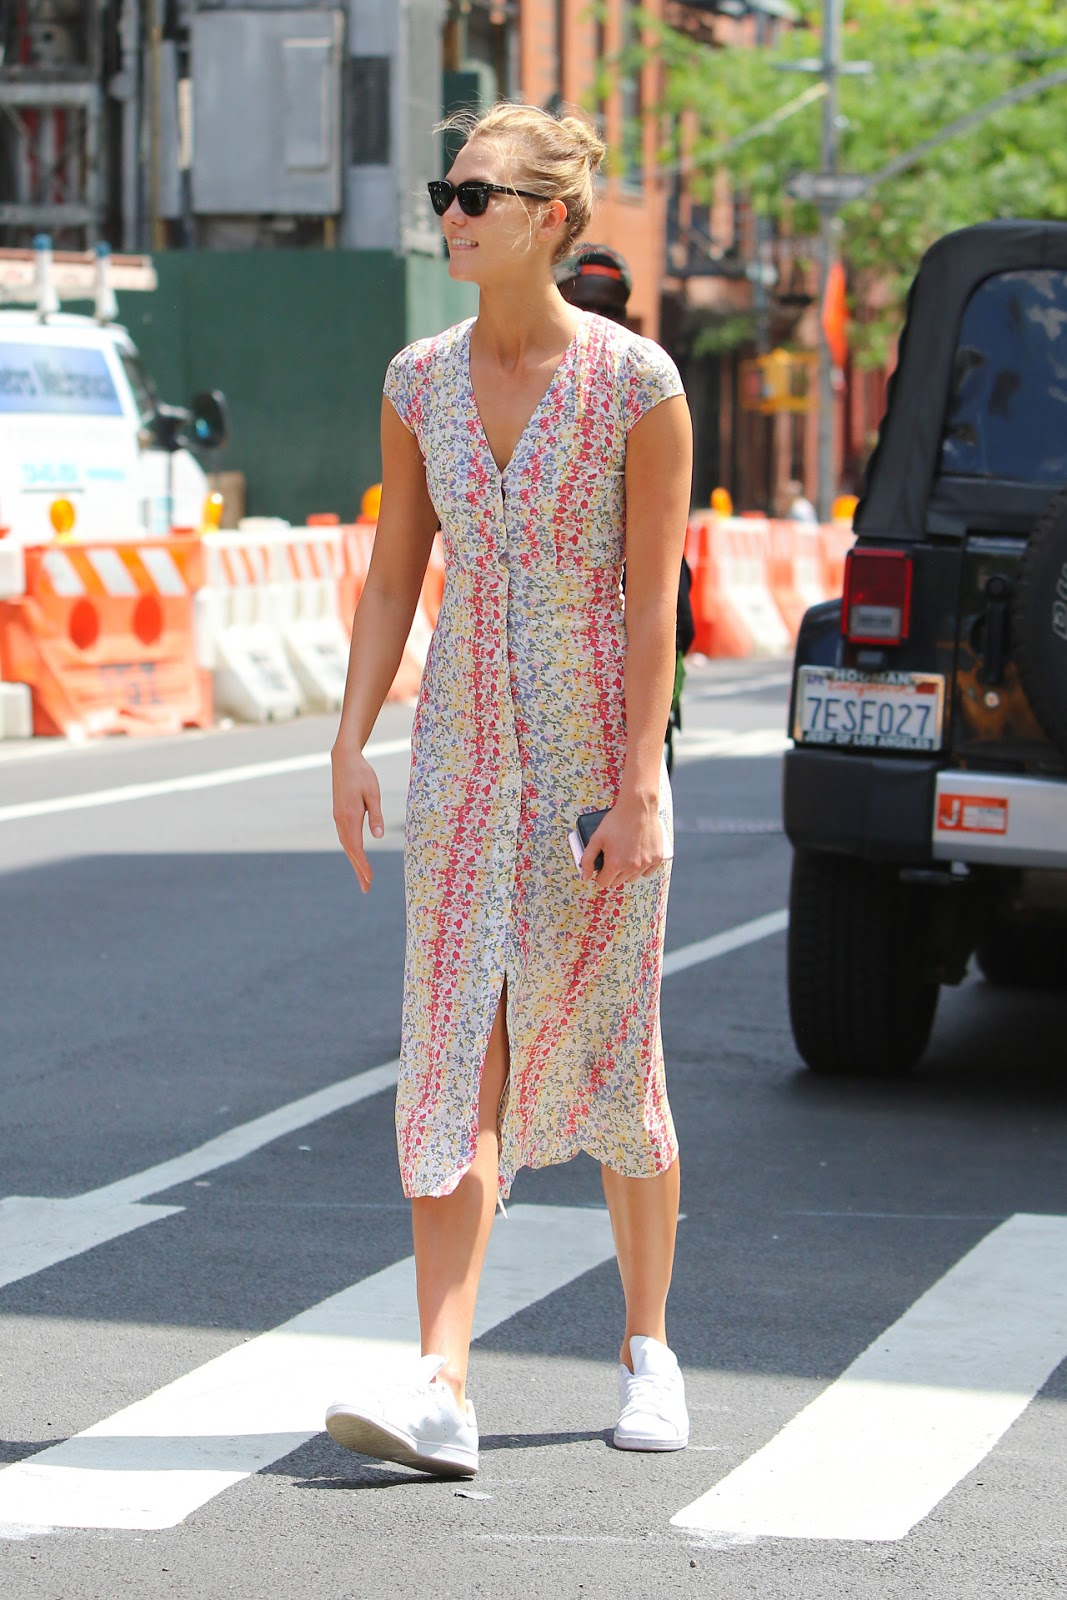 Karlie Kloss Wears a Summery Floral Dress Out in NYC